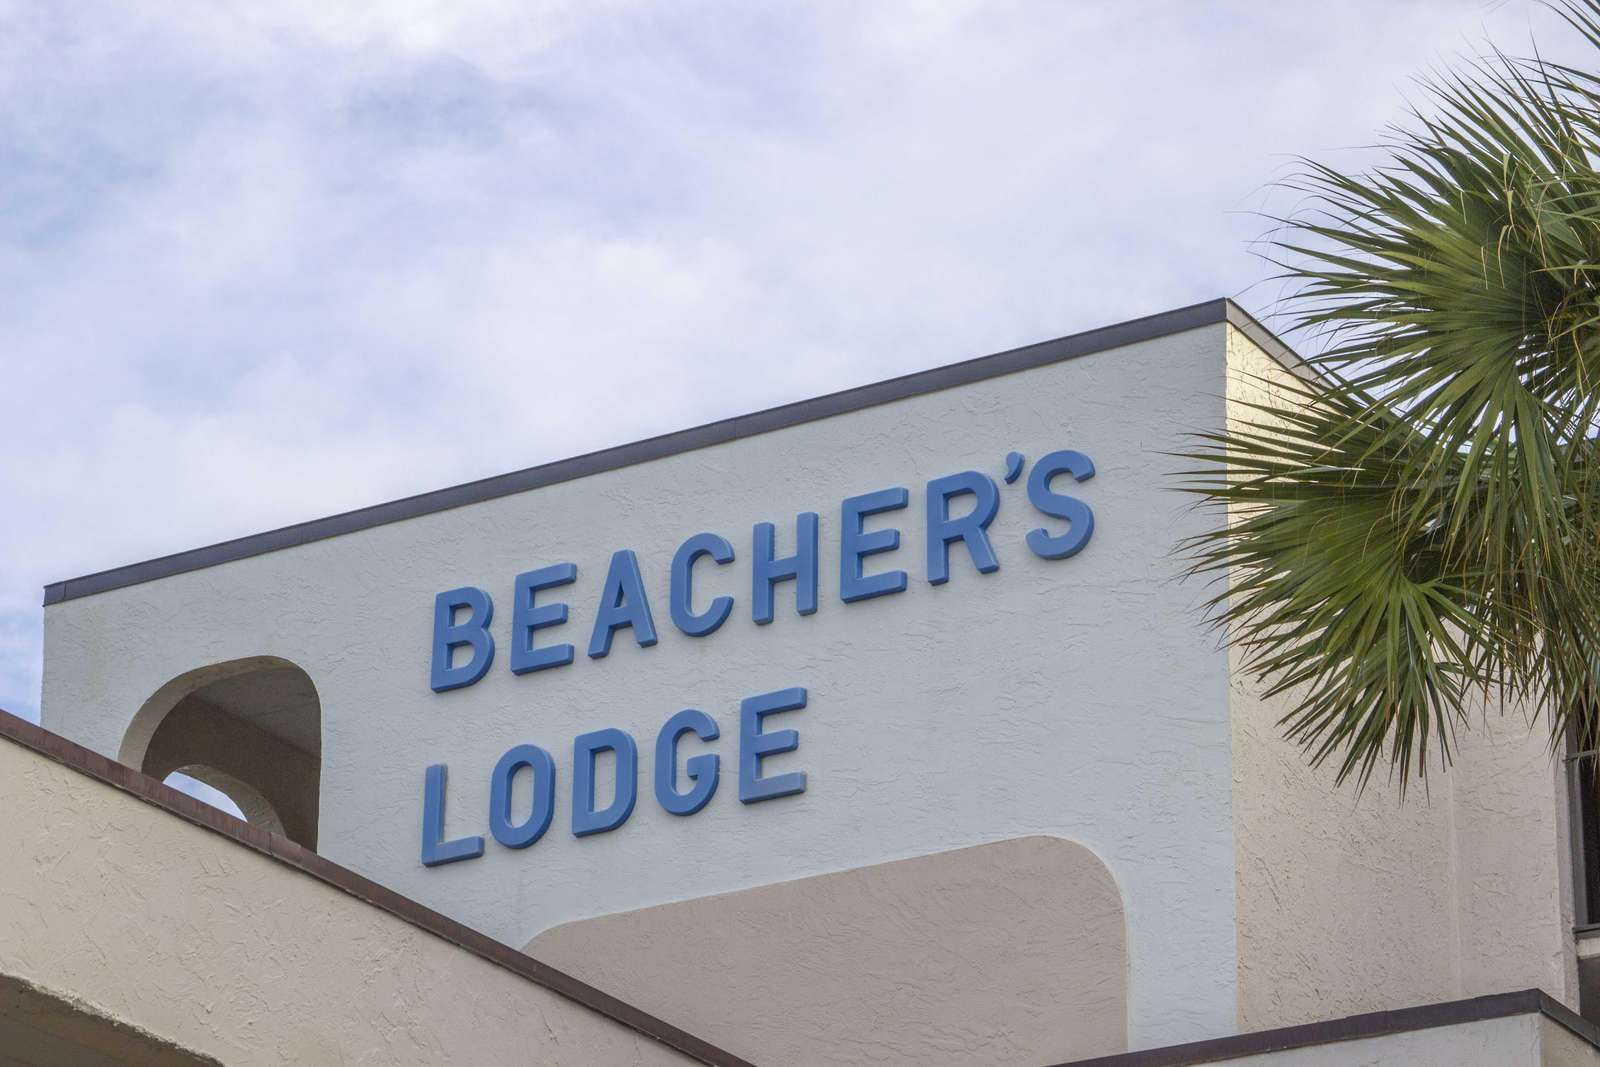 Beacher's Lodge!